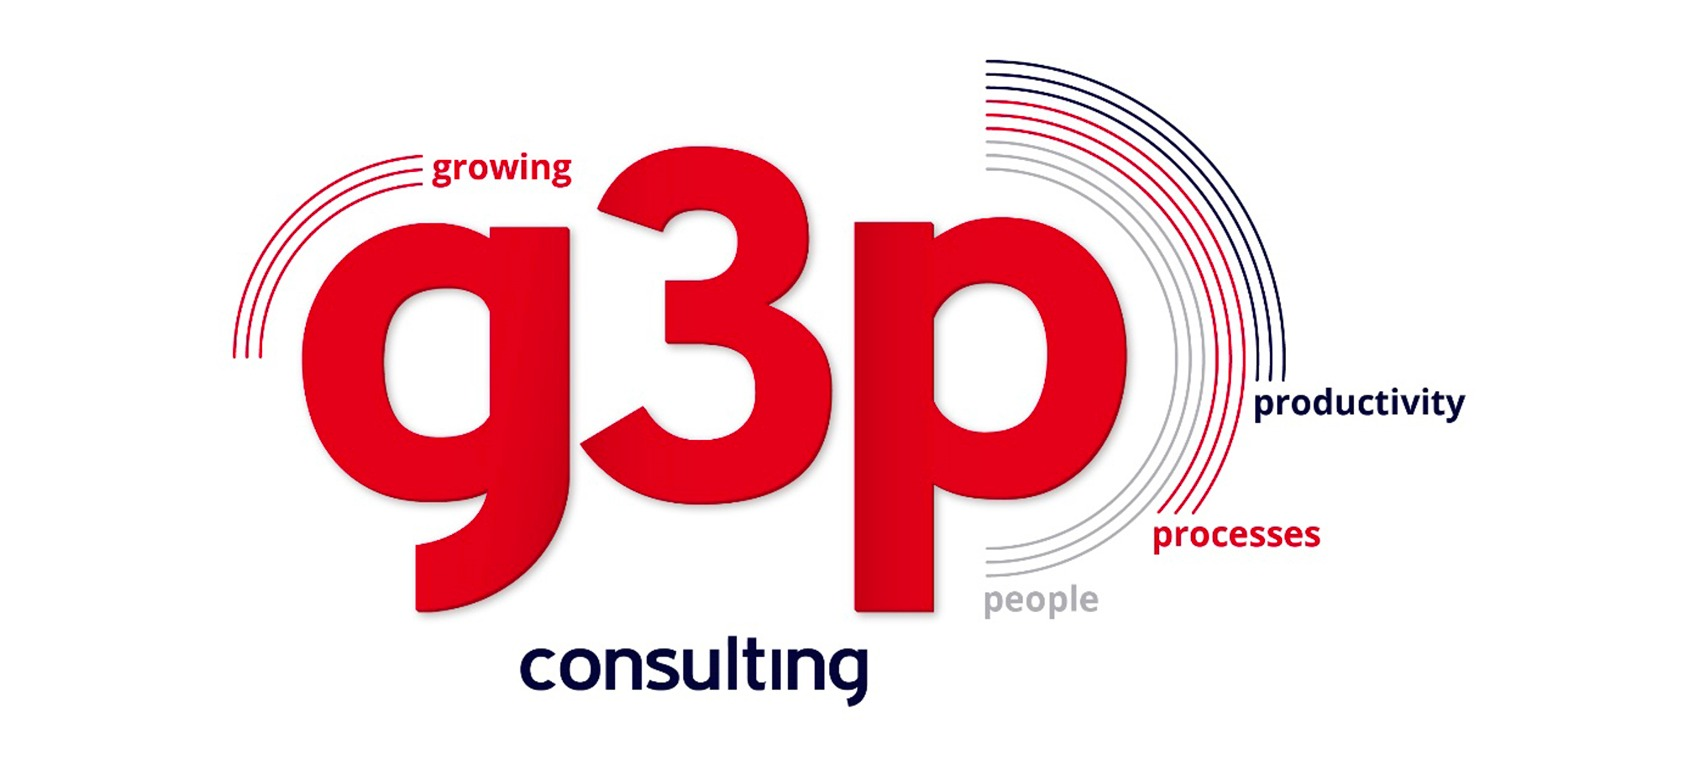 g3p Consulting - growing 3 p's